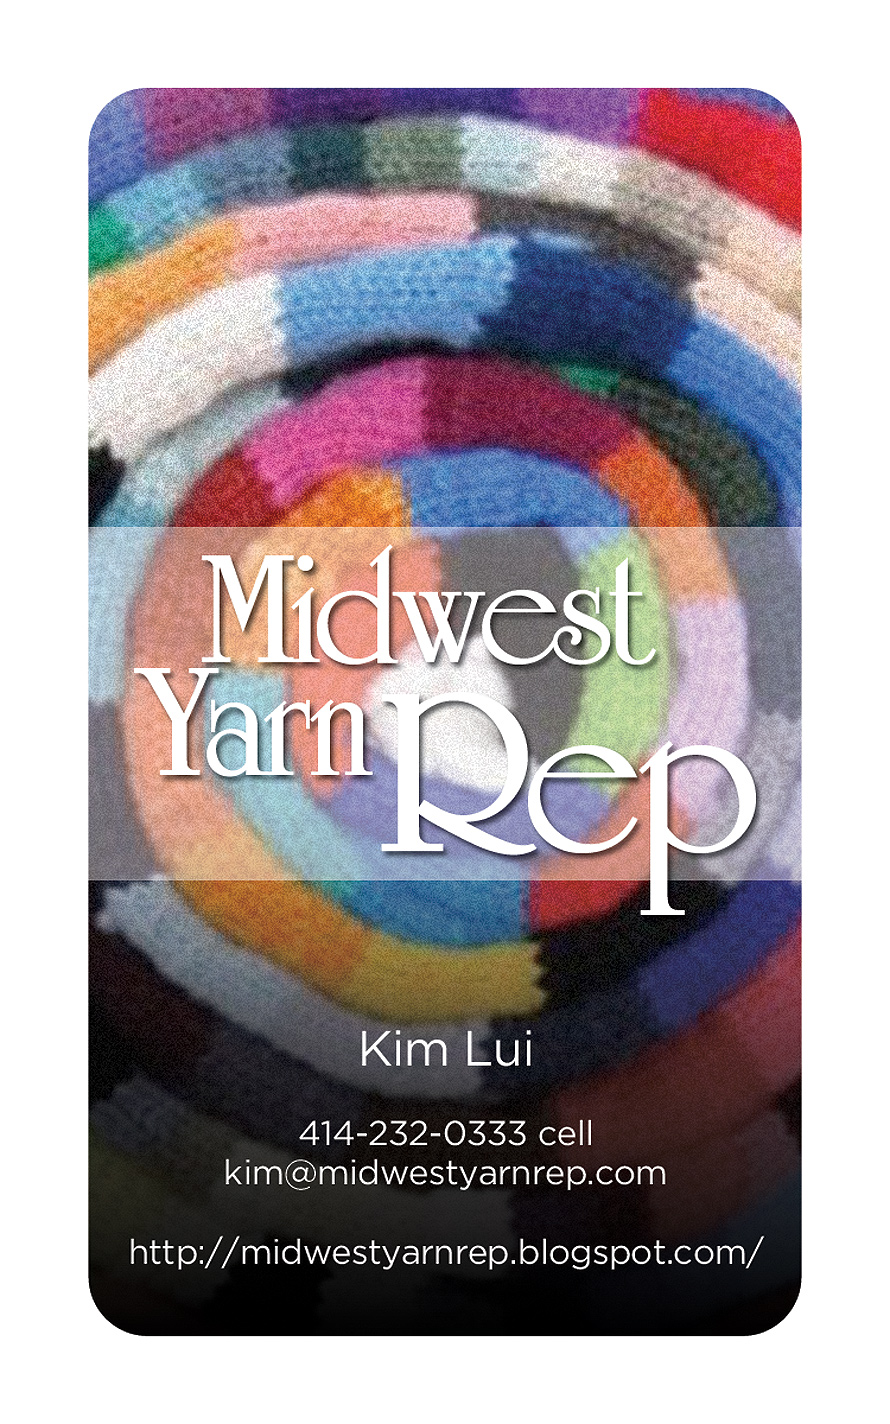 Midwest Yarn Rep